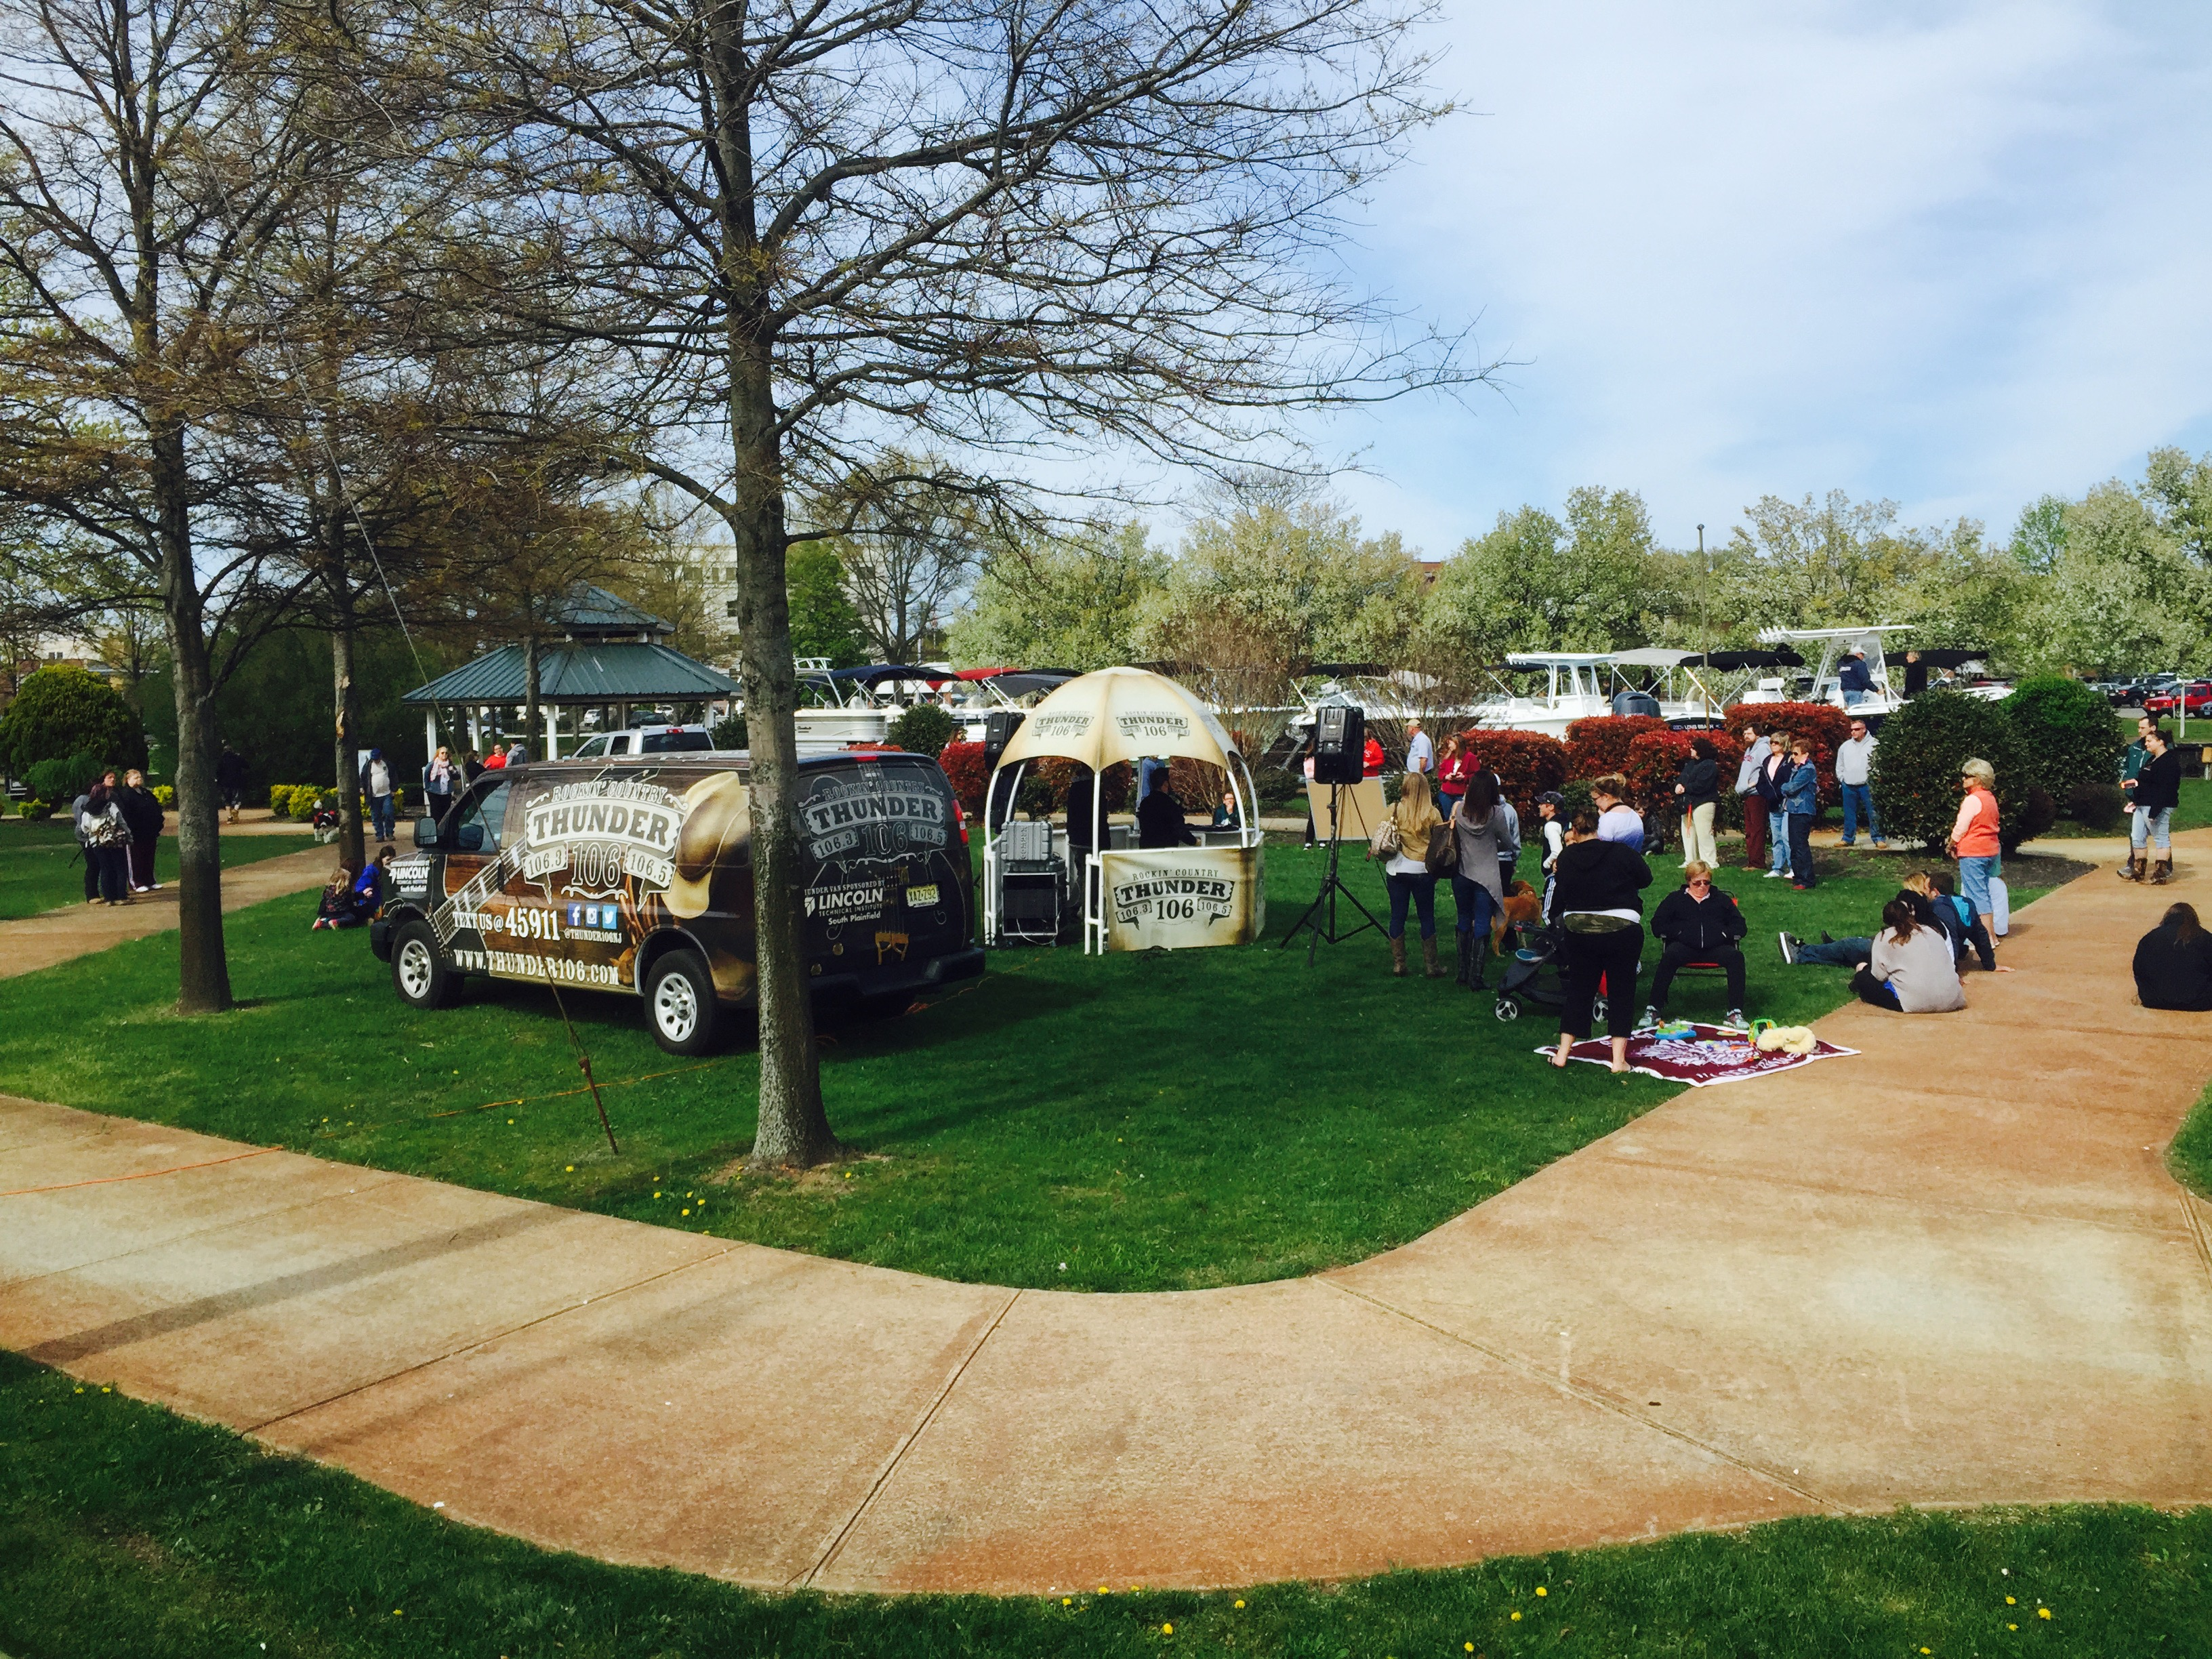 Thunder 106 giving out concert tickets at the spring 2015 huddy park boat show